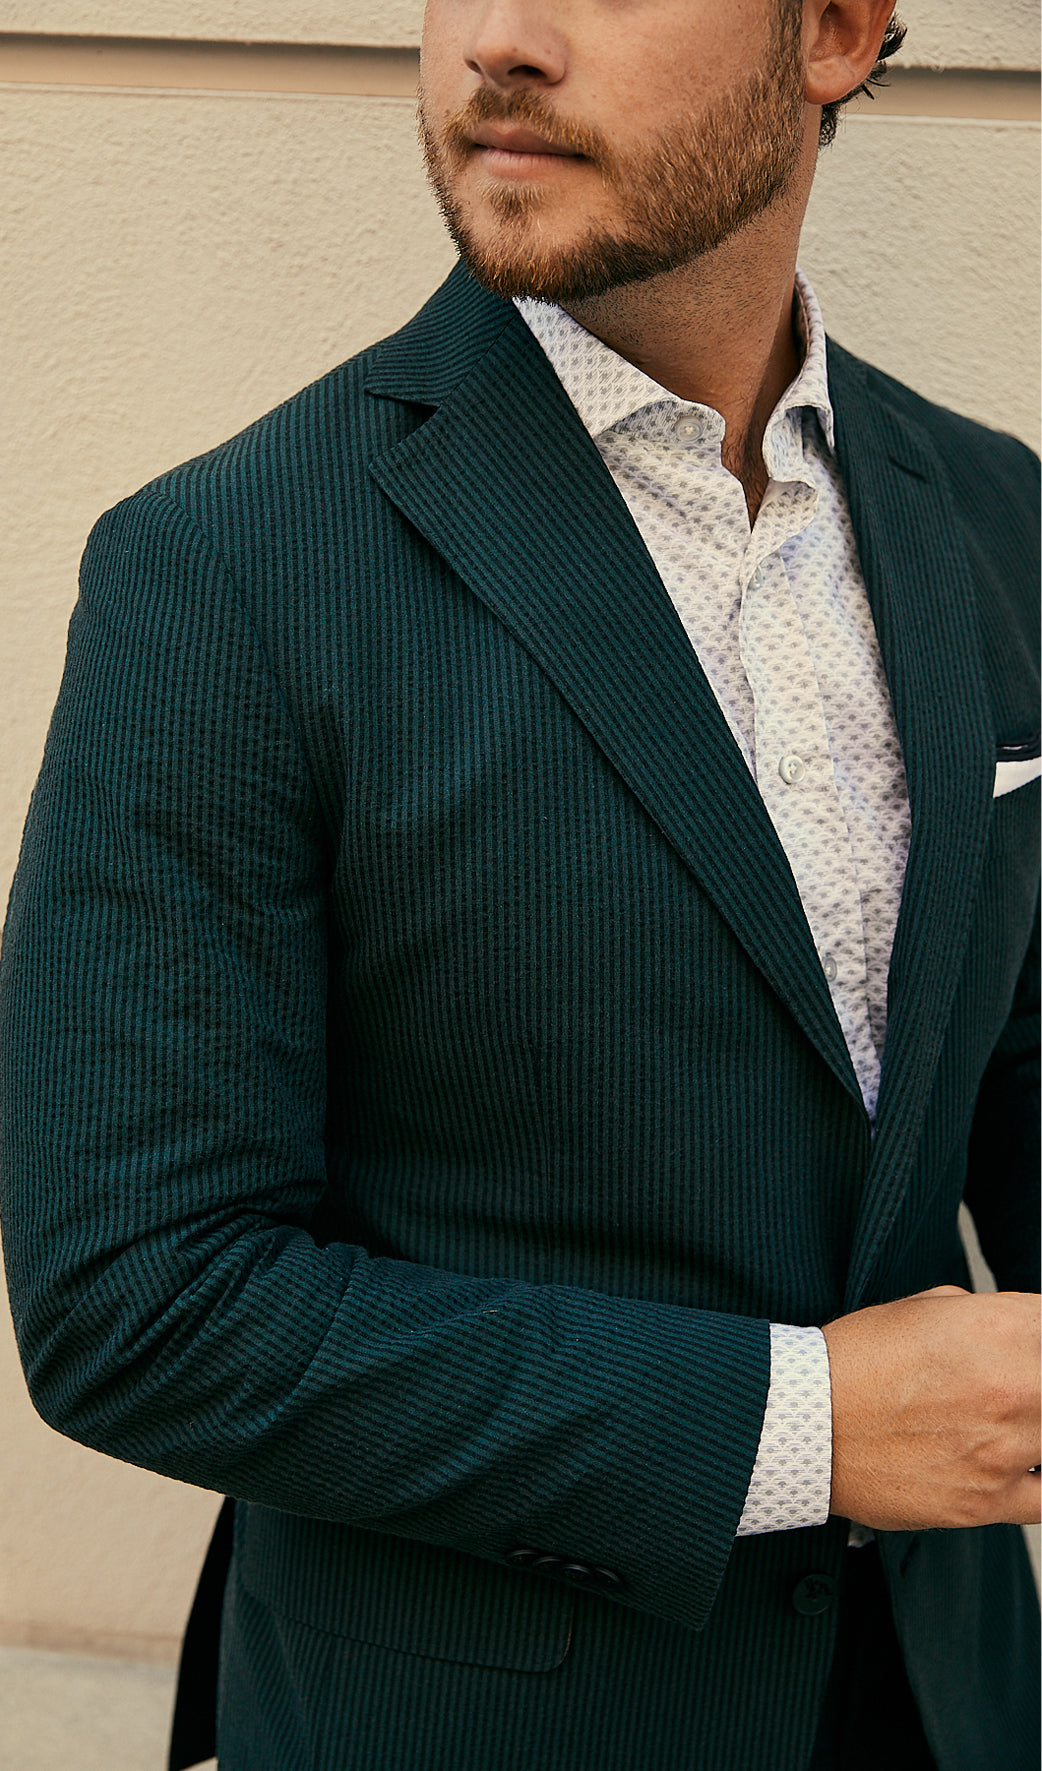 Clothing meant for a good time. Haspel is the original seersucker suit company. Hot weather striped cotton suits.